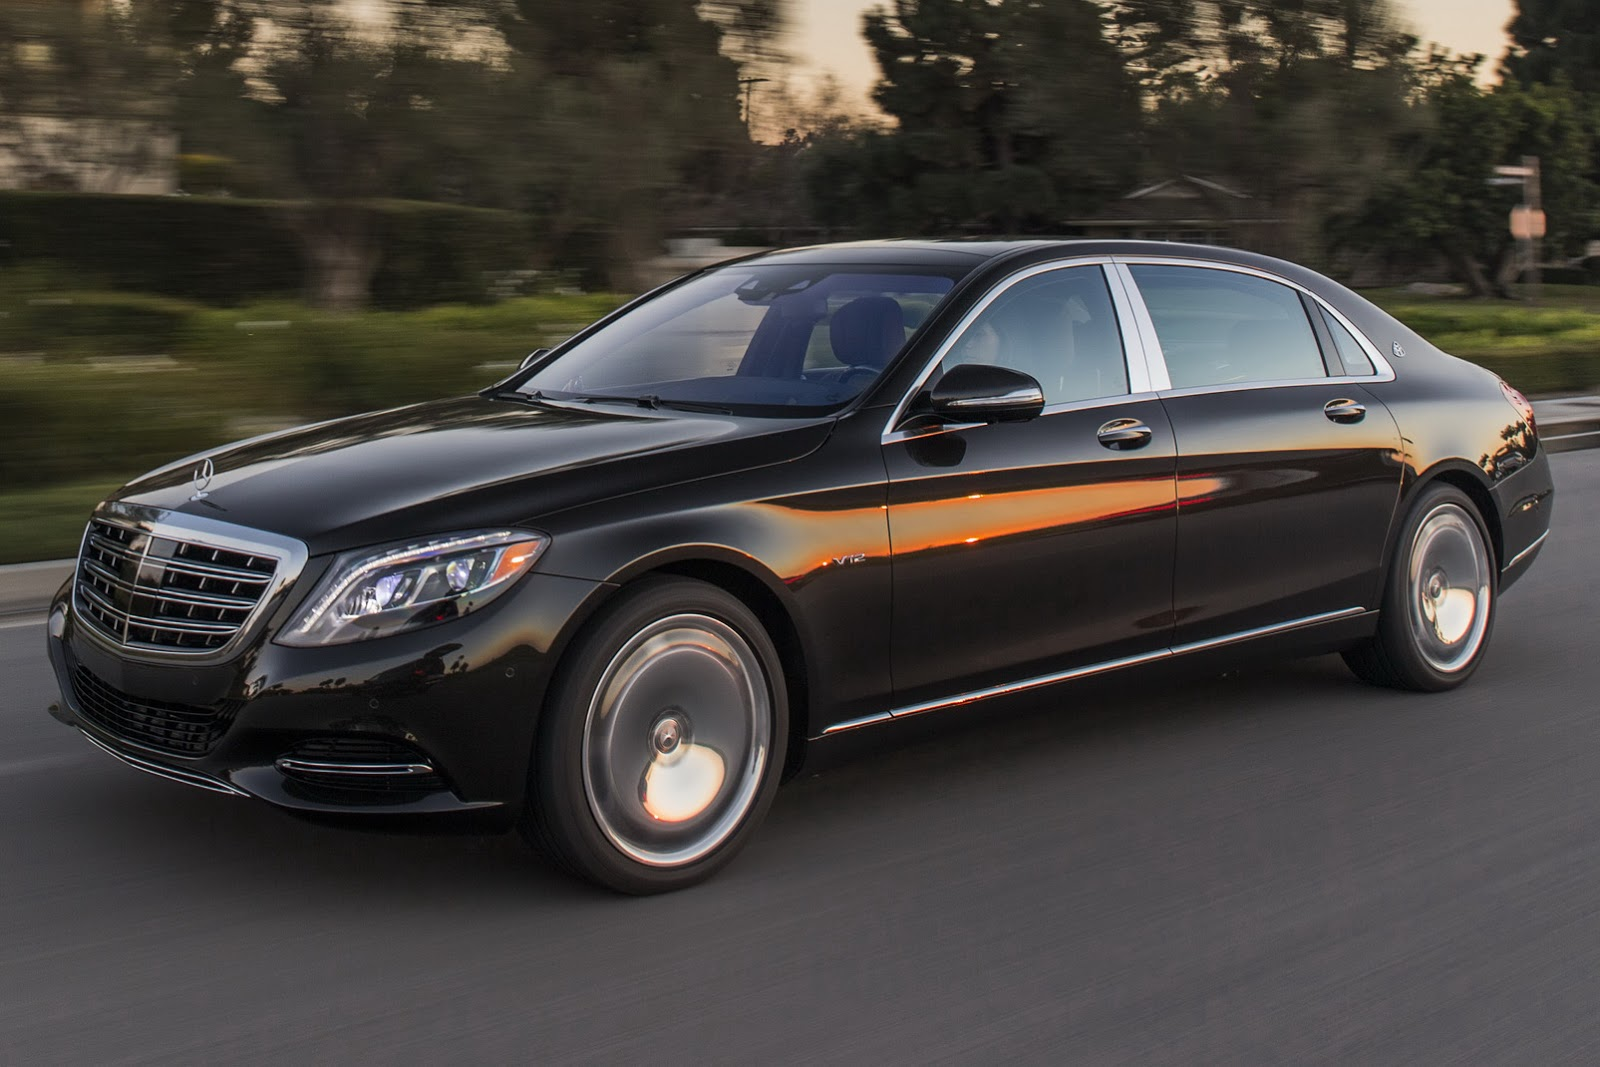 get to know the 2016 mercedes maybach s600 in 57 new photos carscoops. Black Bedroom Furniture Sets. Home Design Ideas